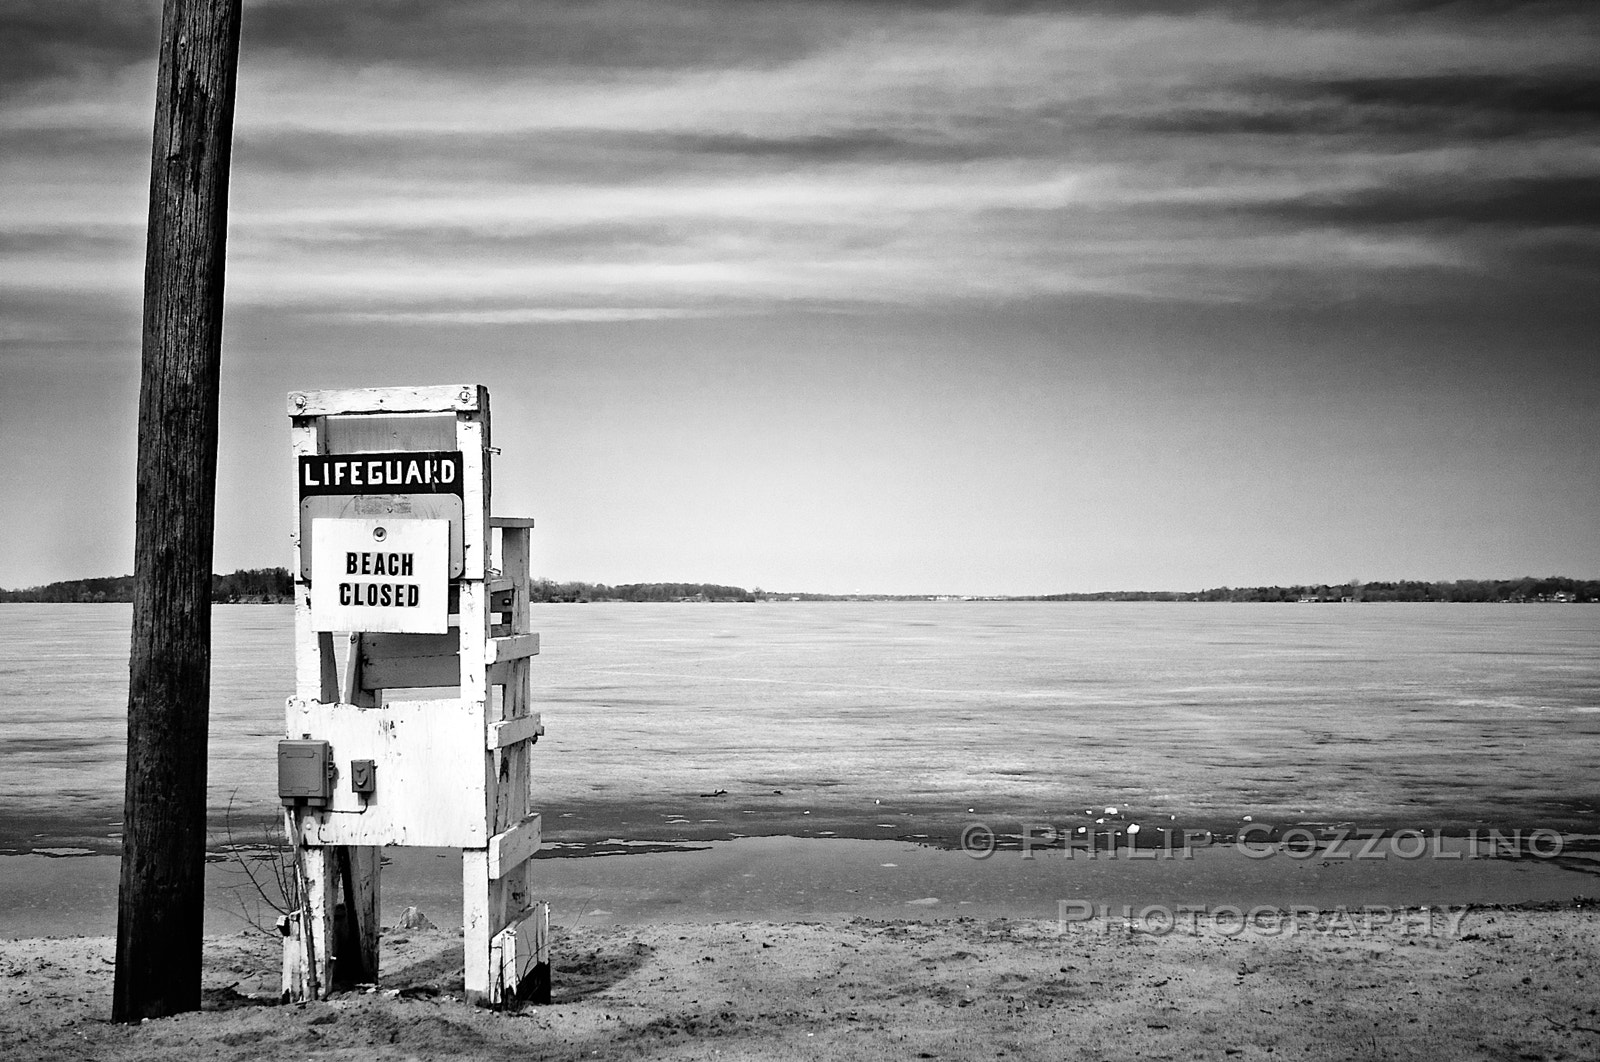 Photograph The Beach by Philip Cozzolino on 500px